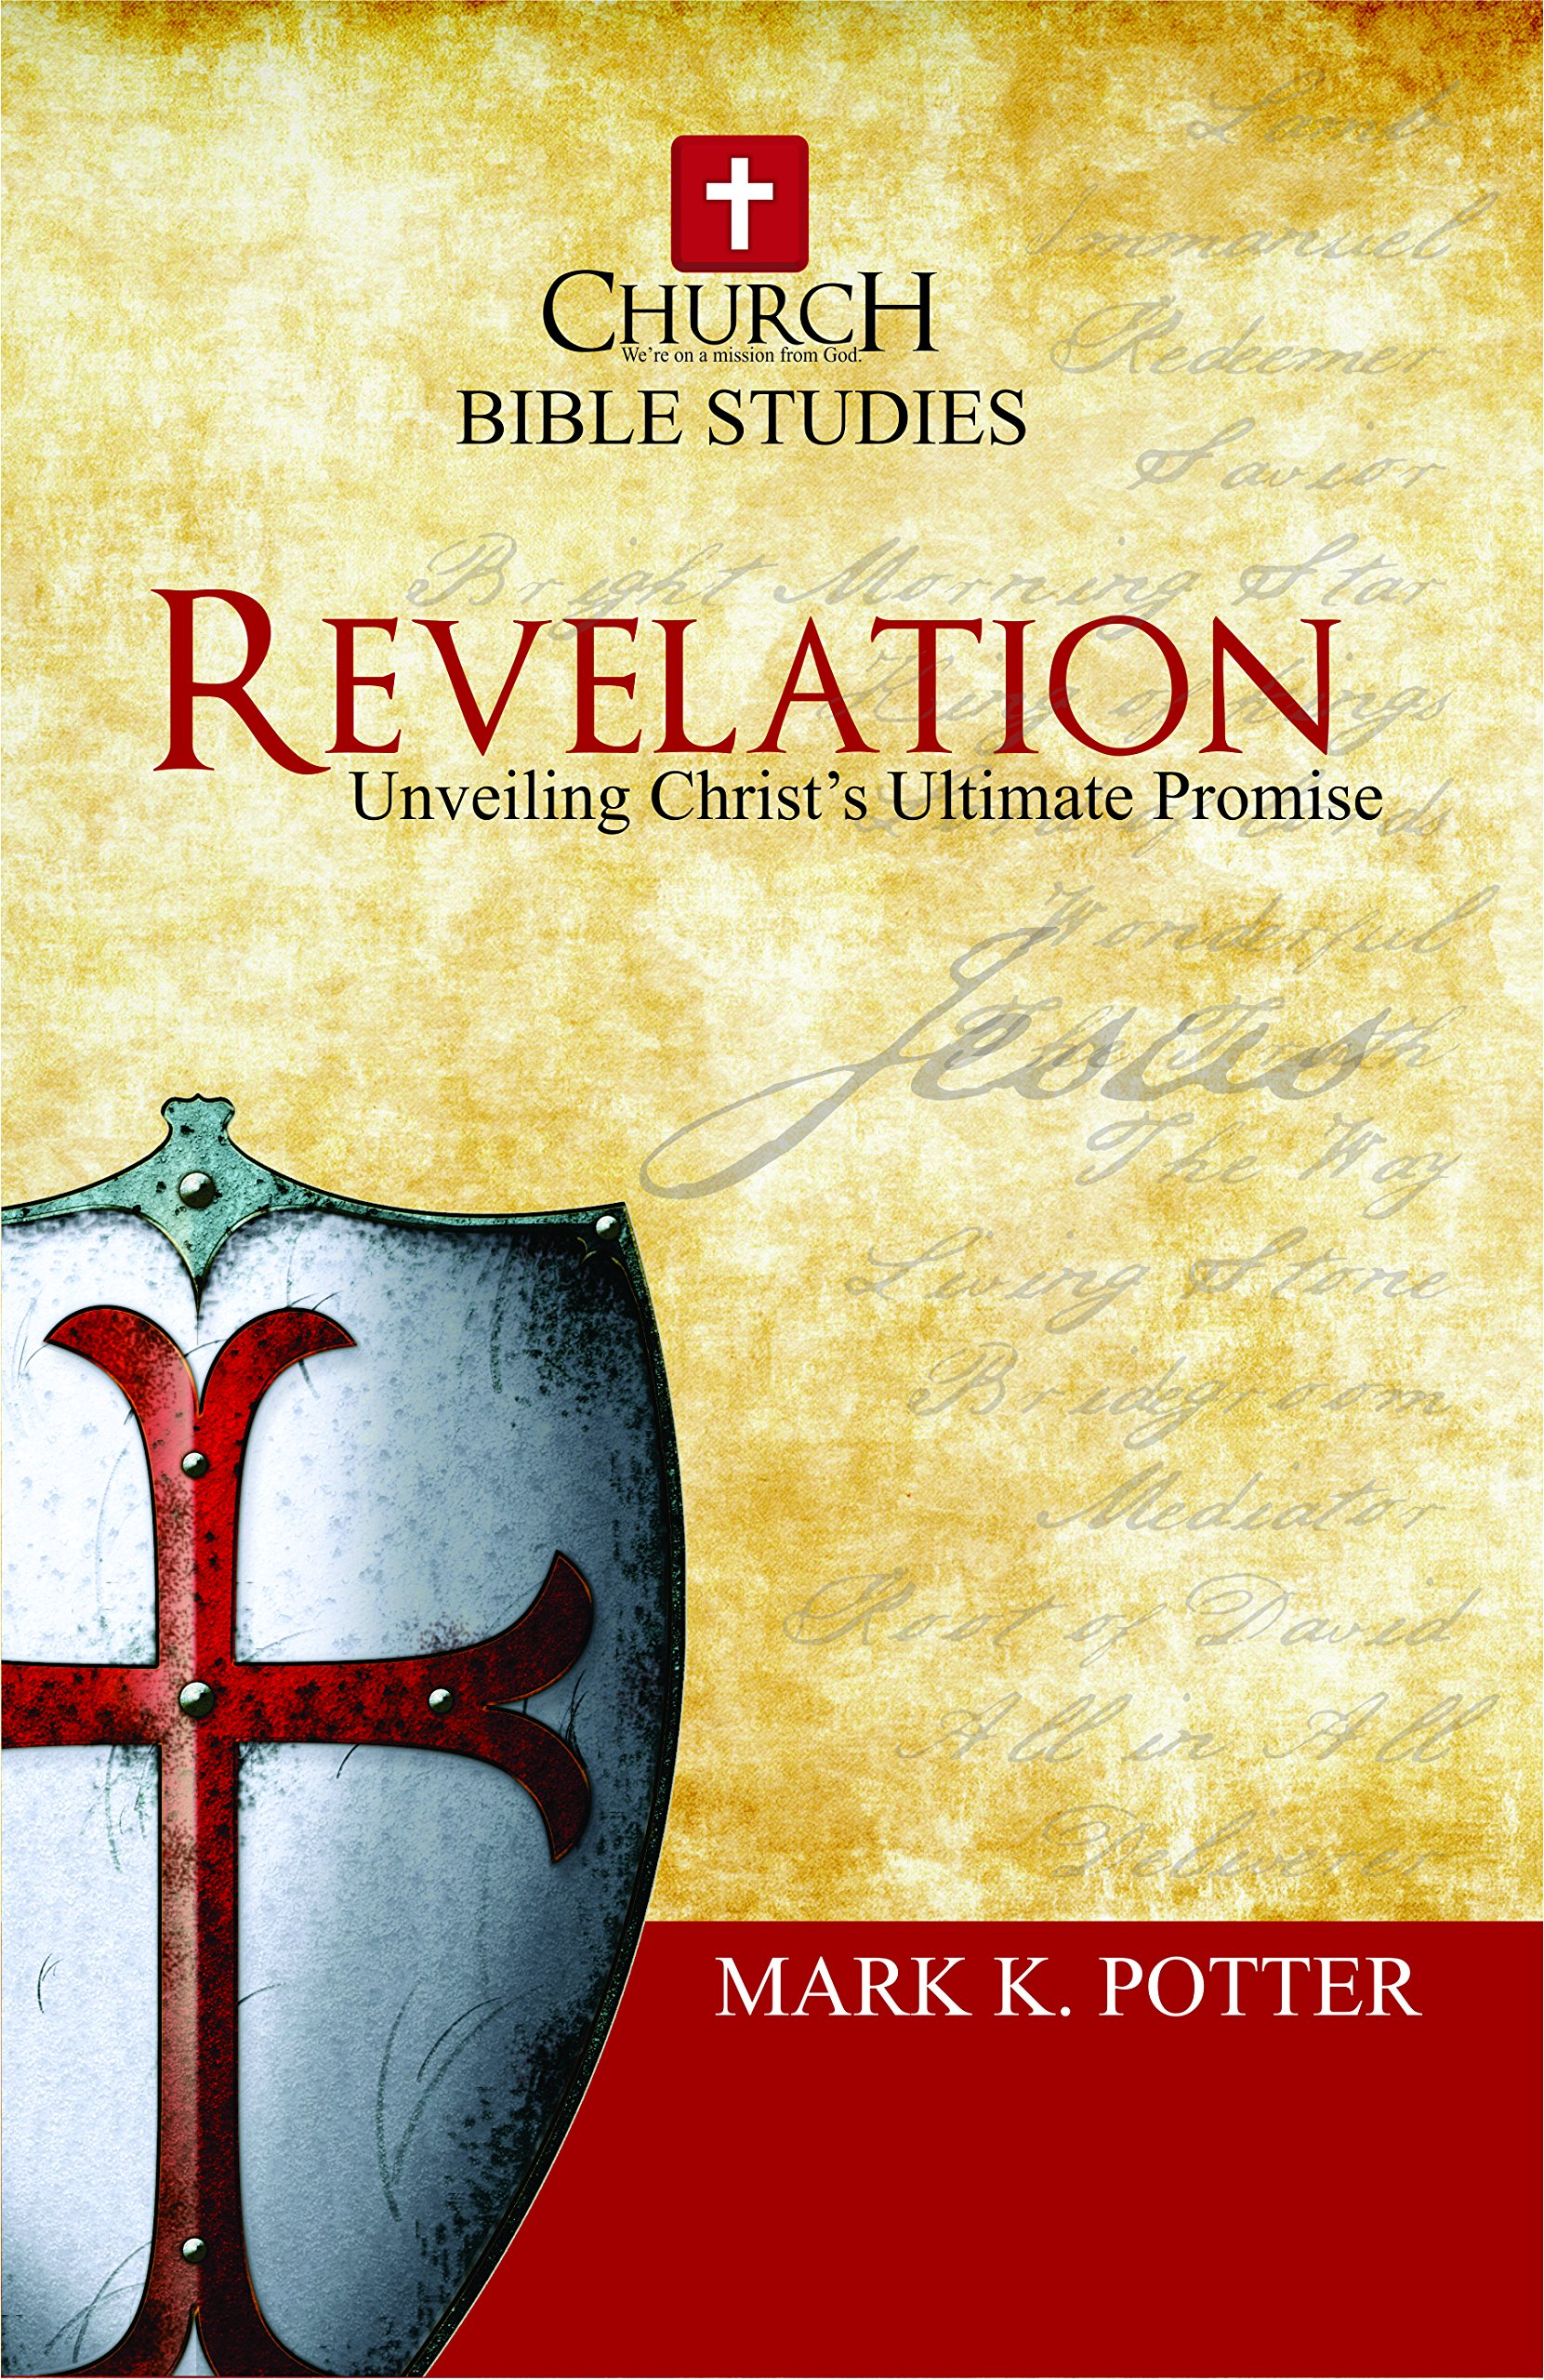 Revelation: Unveiling Christ's Ultimate Promise PDF